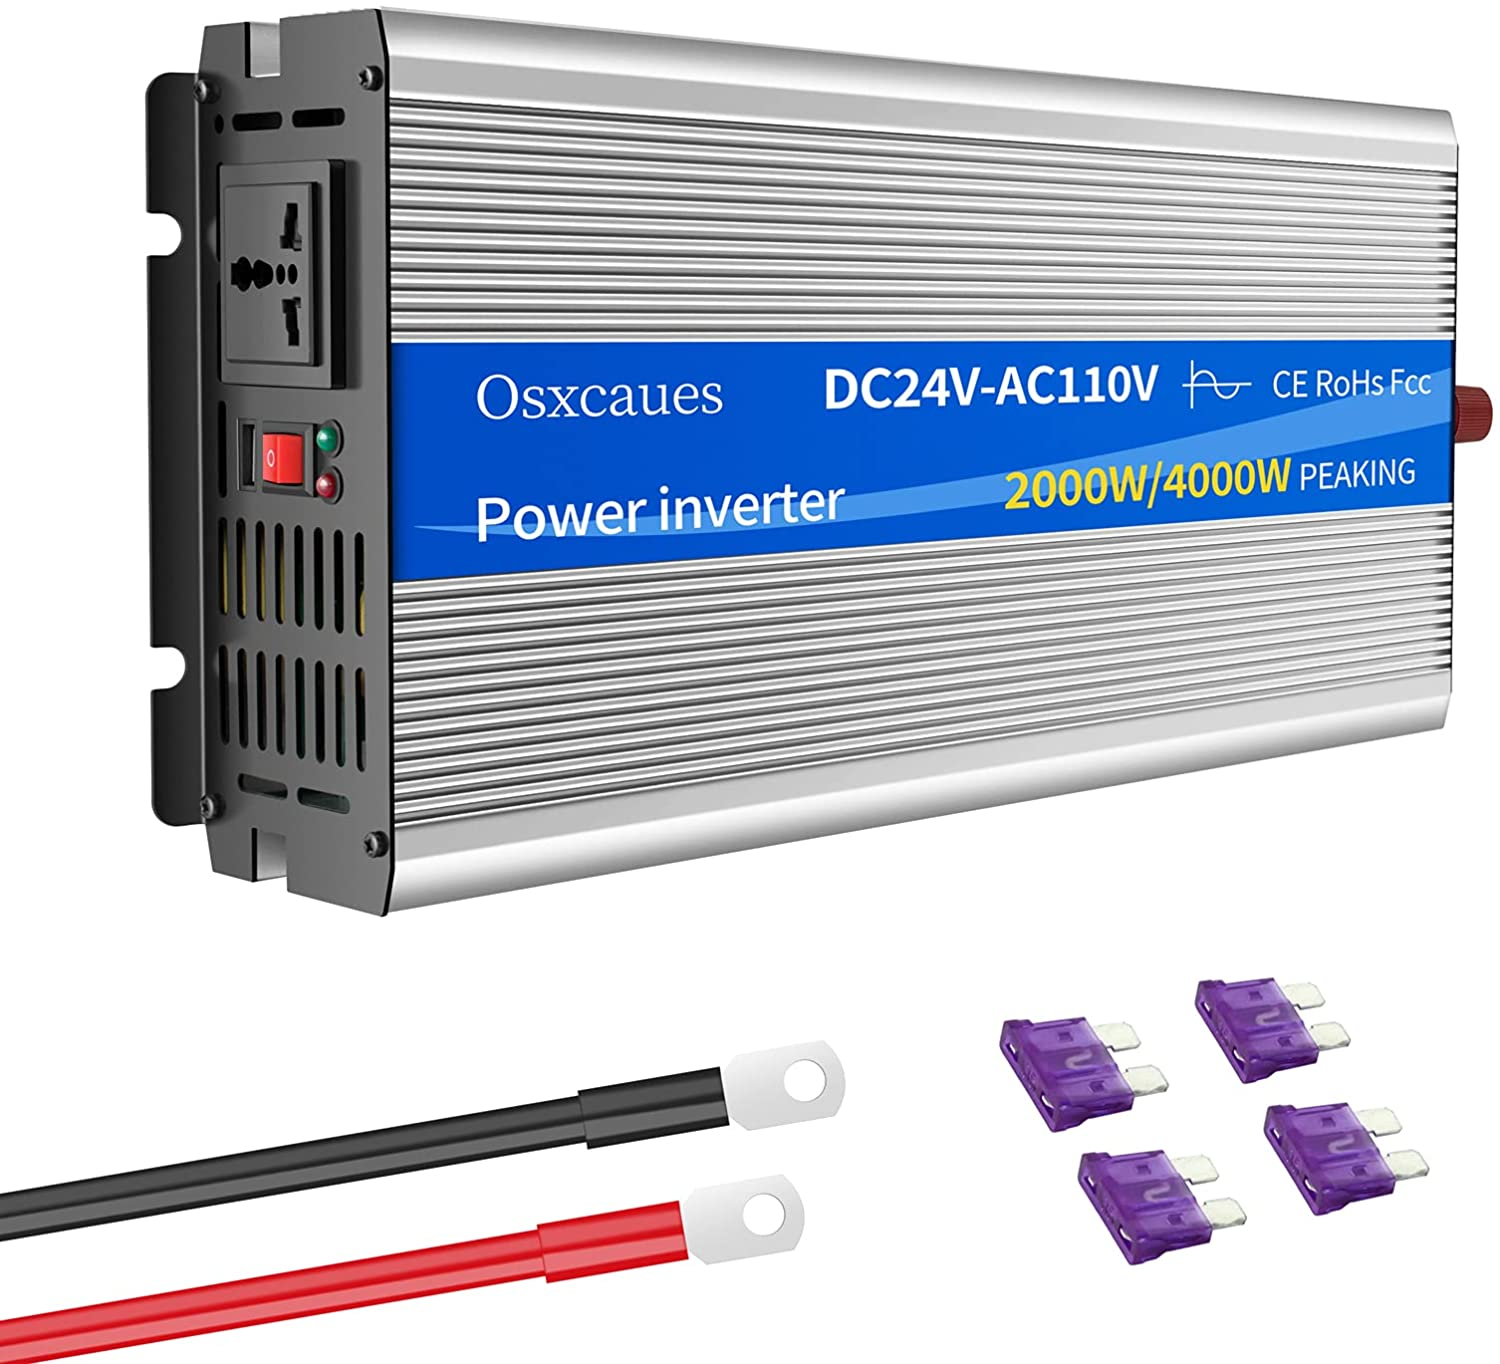 OSXCAUES Inverter 2000 Watts Pure Sine Wave 24V to 110V/120V DC to AC Converter with 1 AC Outlet 1 USB Port Approved Under ROHS FCC EMC